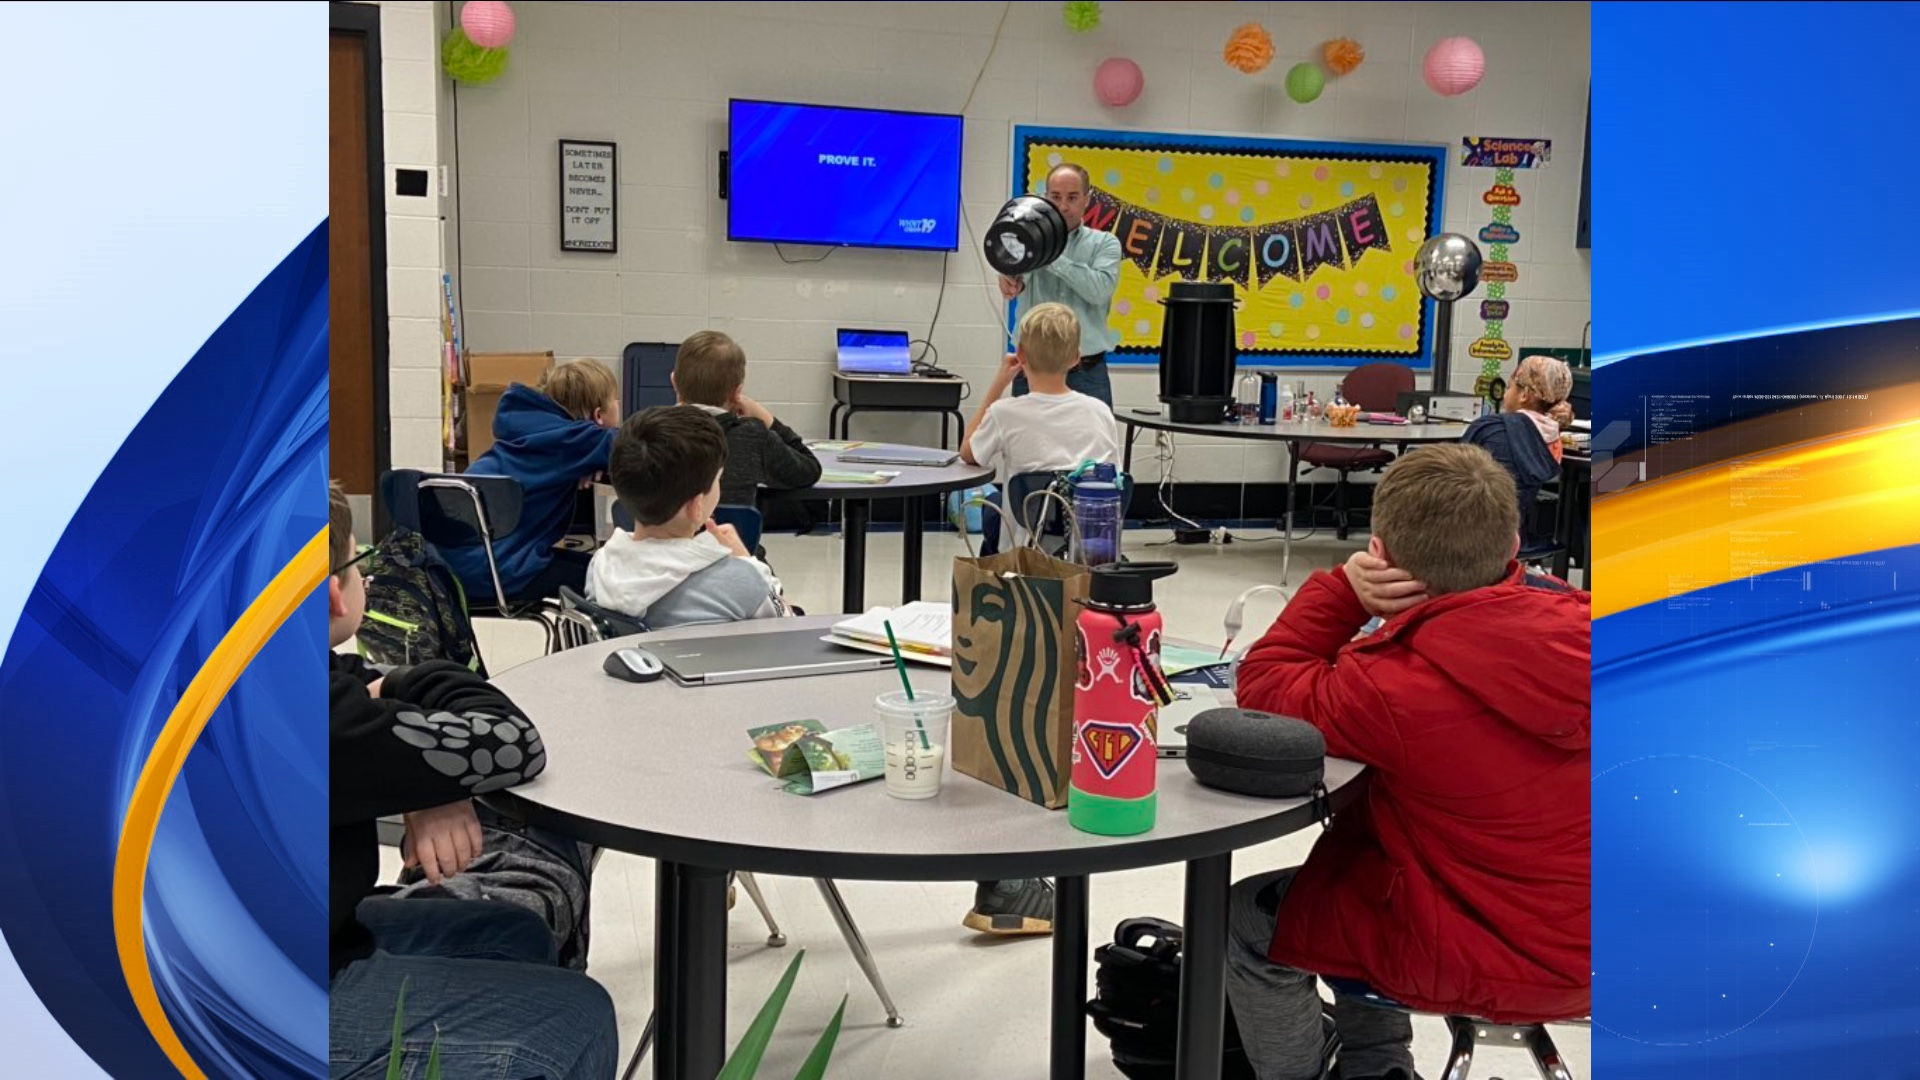 News 19 Chief Meteorologist Jason Simpson visited the students at Madison Virtual Academy in March 2020.